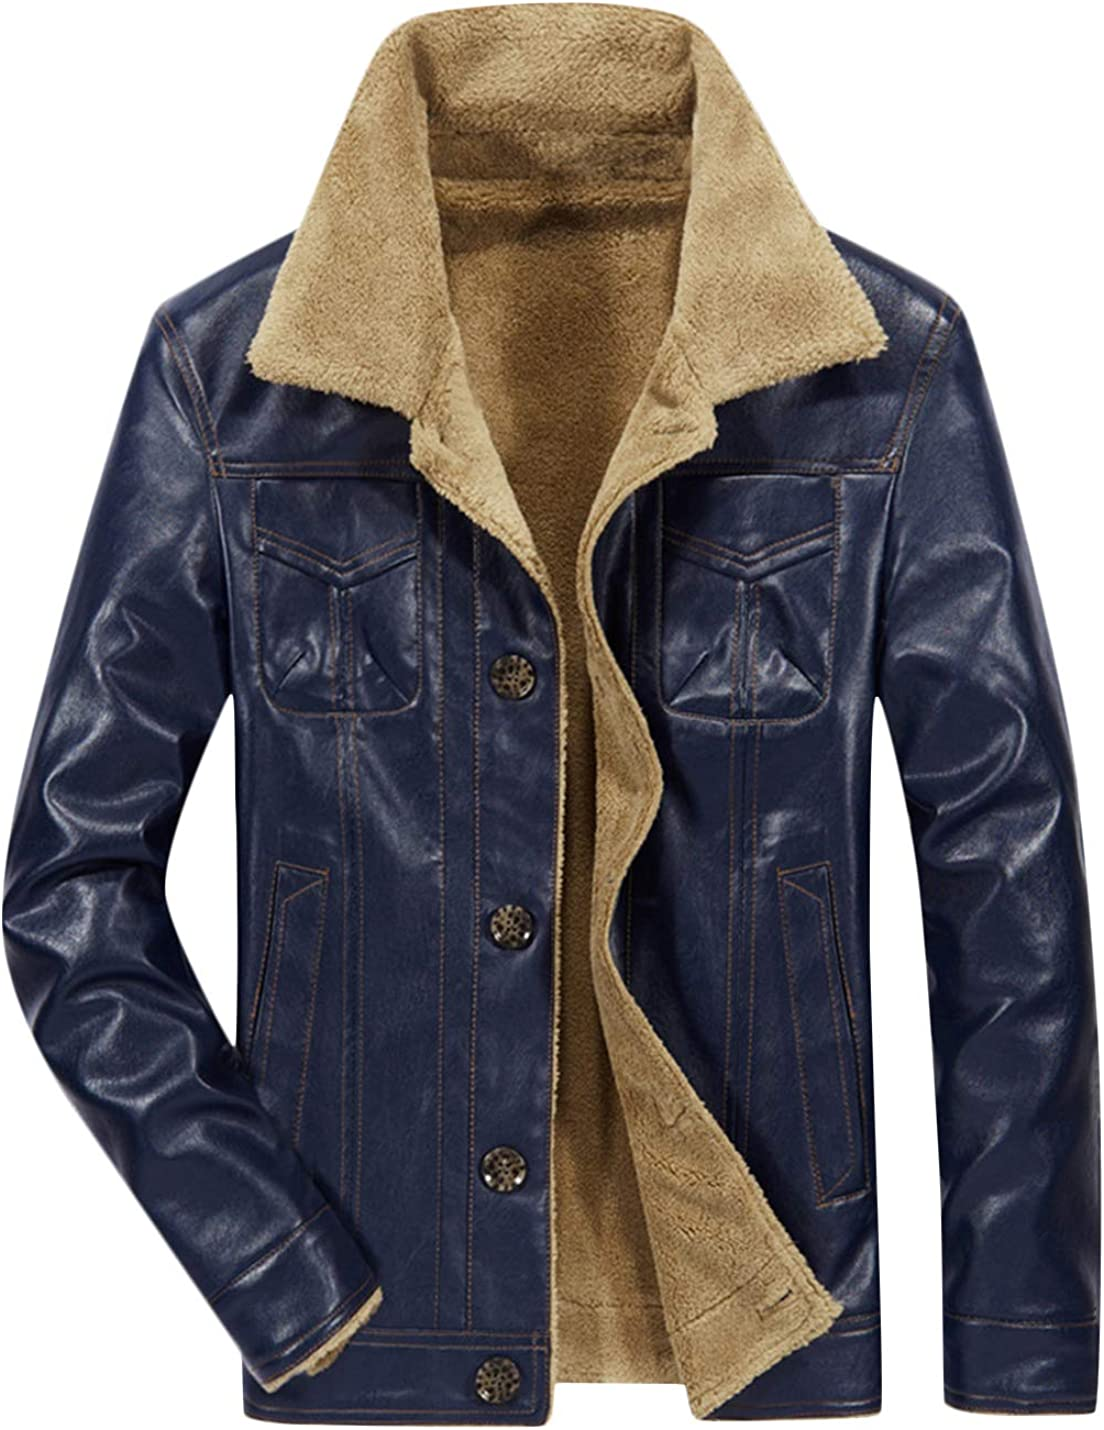 Springrain Men's PU Leather Turn Down Collar Button Front Pockets Jacket Classic Woolen Thicken Comfy Coat